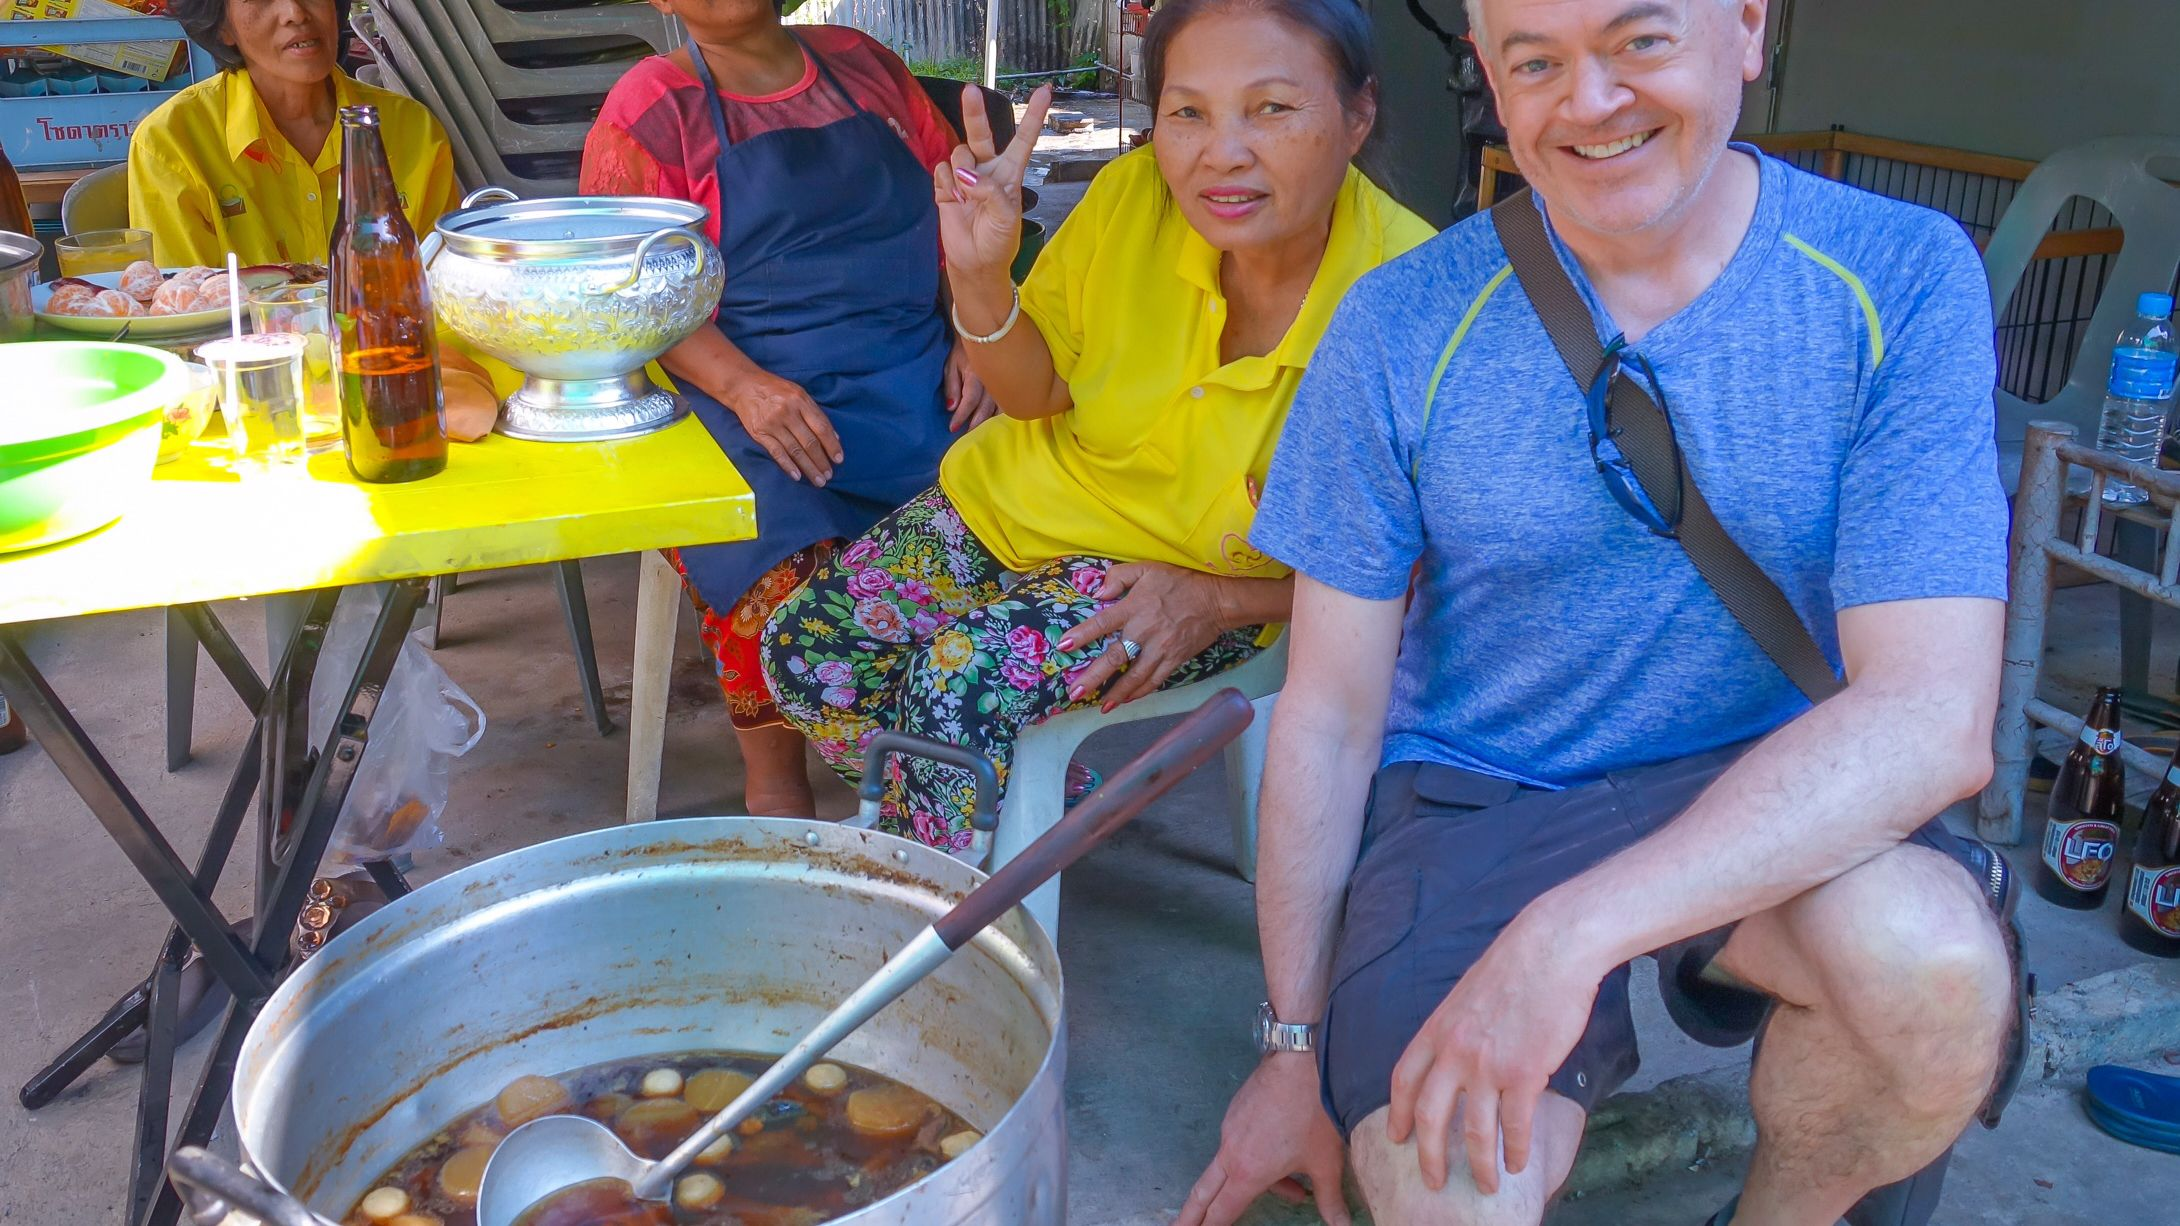 Male tourist and local women posing with large pot of freshly prepared soup.